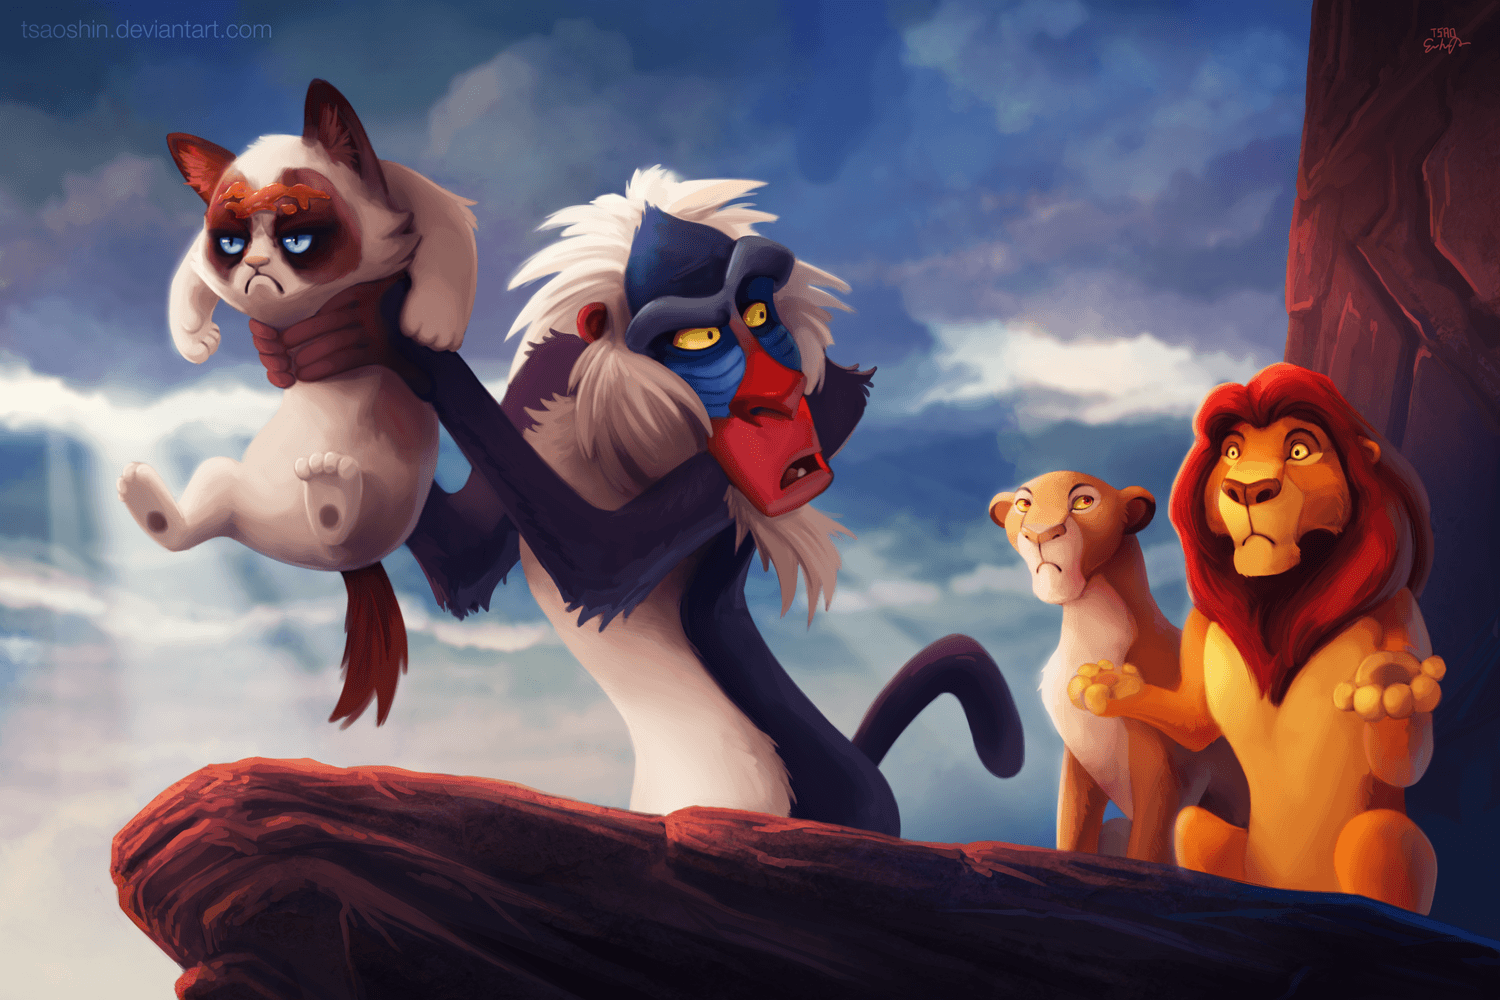 Vamers - Artistry - Grumpy Cat Phtobombs Disney Classics - Artwork by Eric Proctor AKA TsaoShin - NO to the Circle of Life